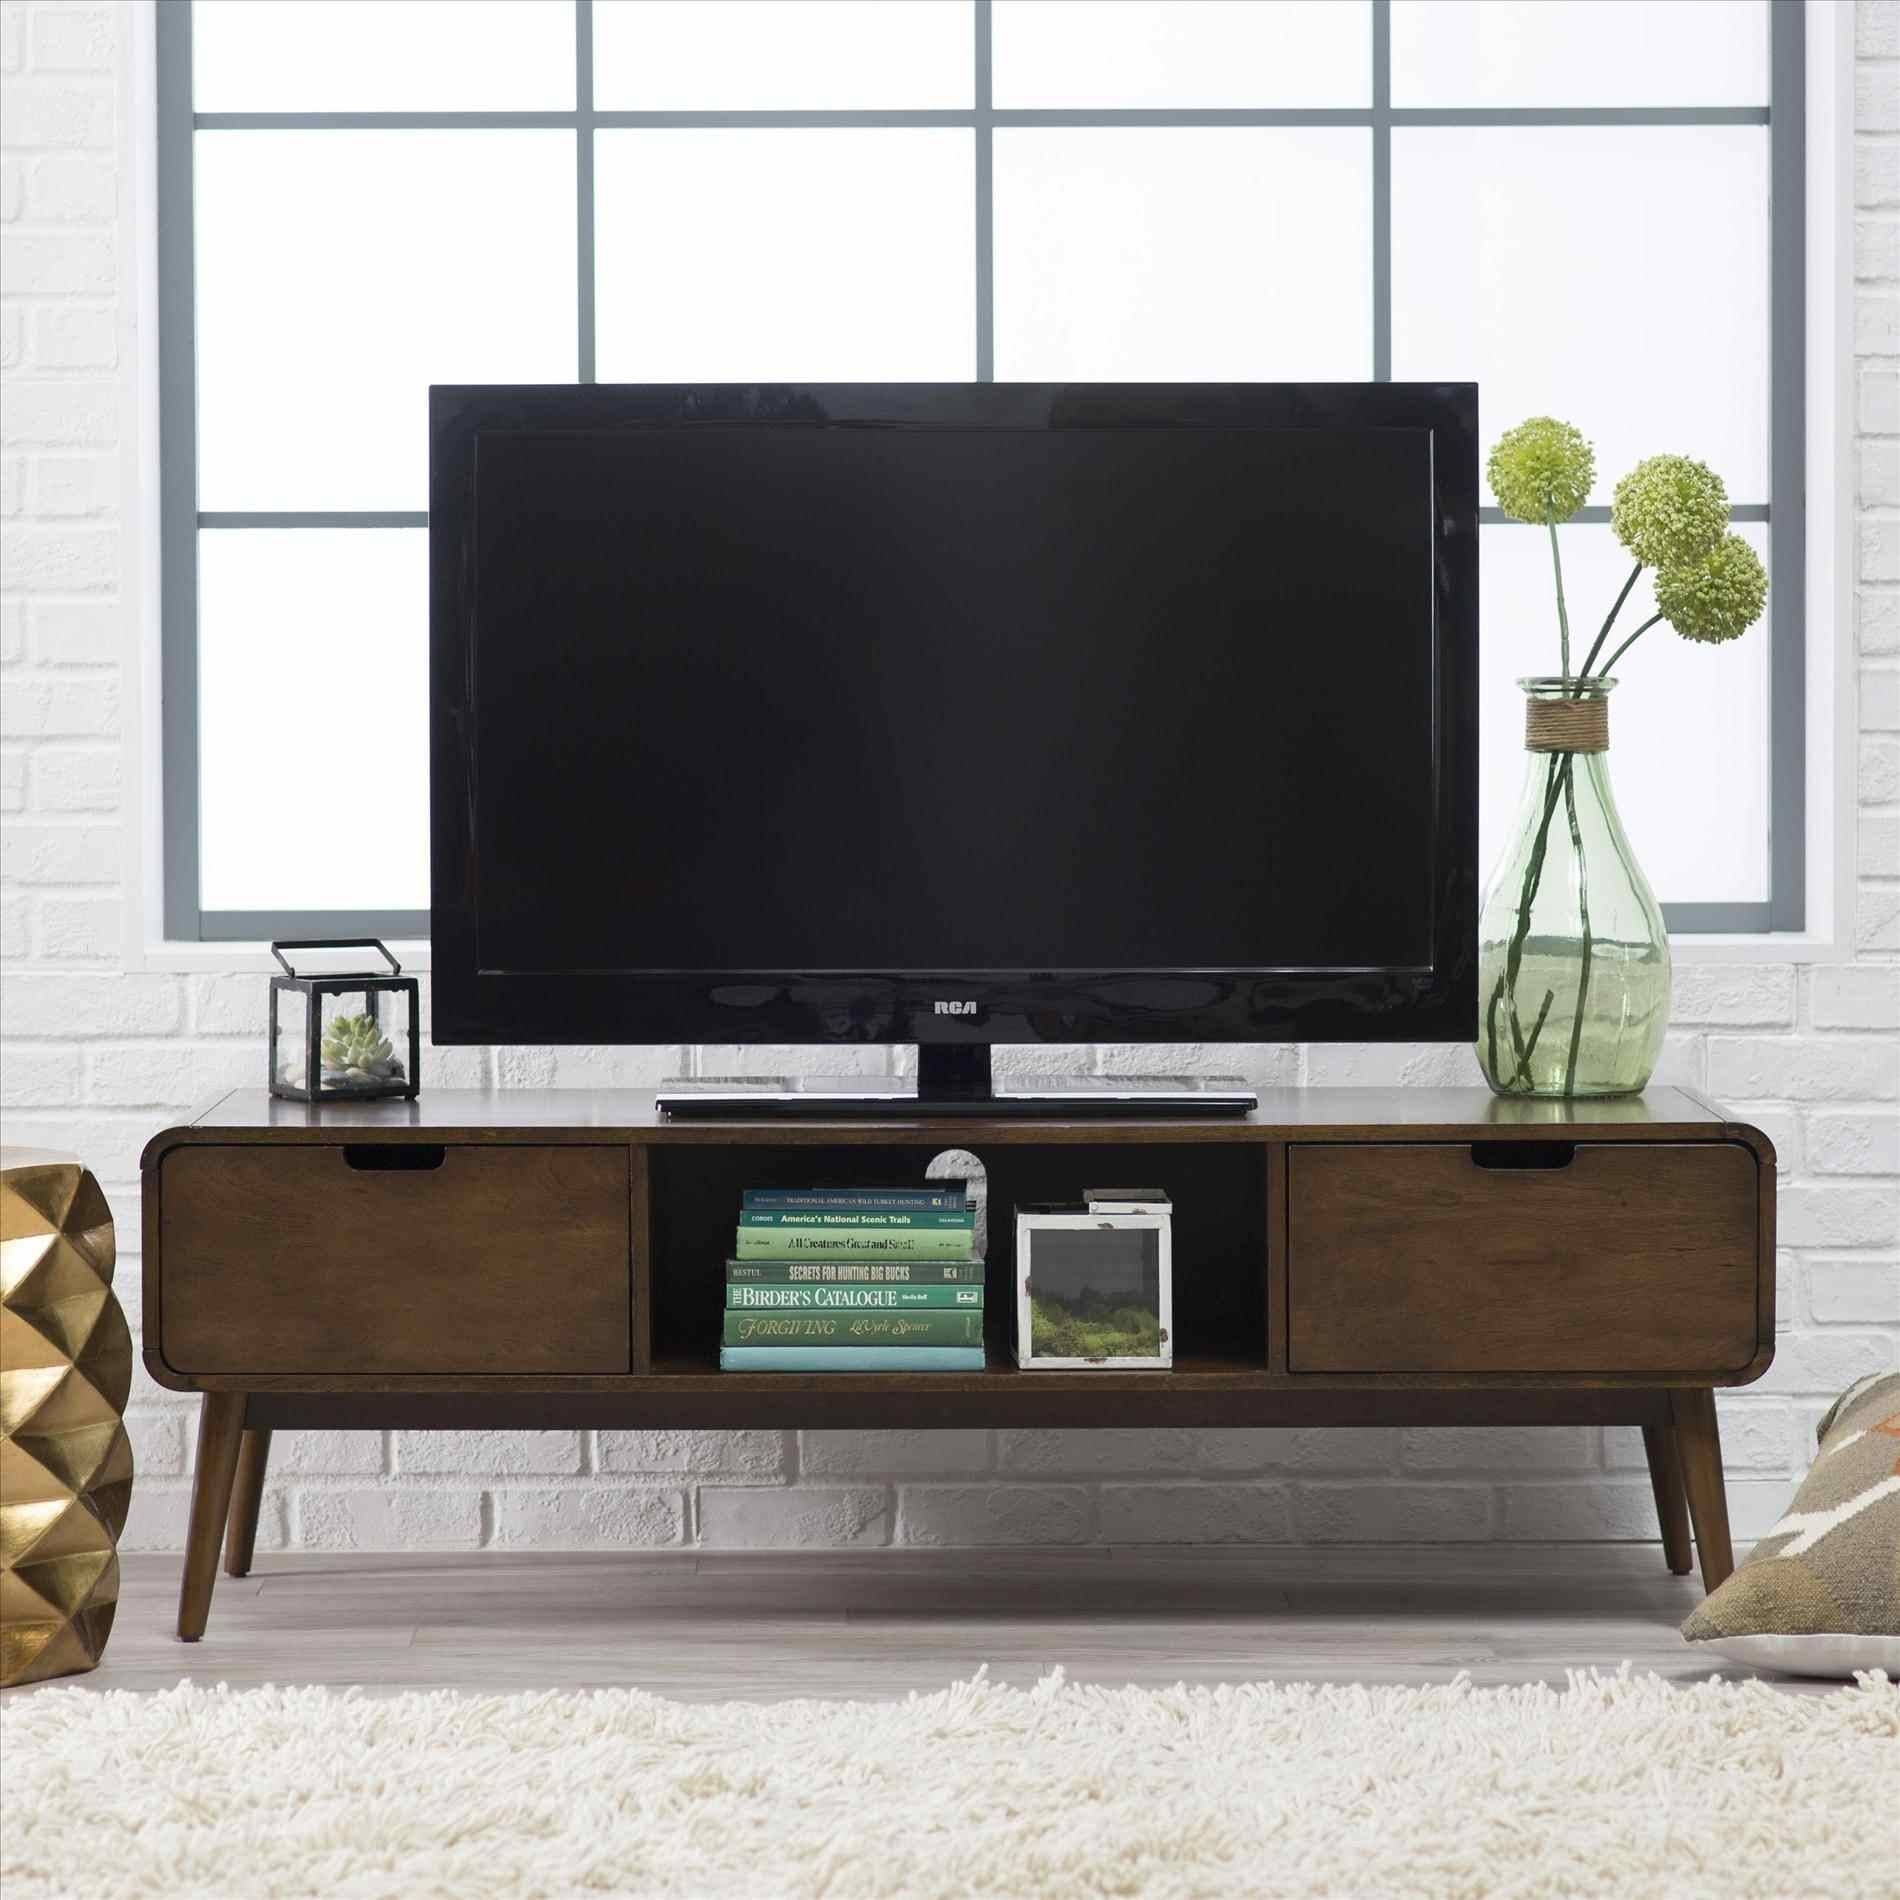 Cabinet Walnut Funky Doors Wood Furniture Wd Home Design Wall Inside Funky Tv Cabinets (View 8 of 15)